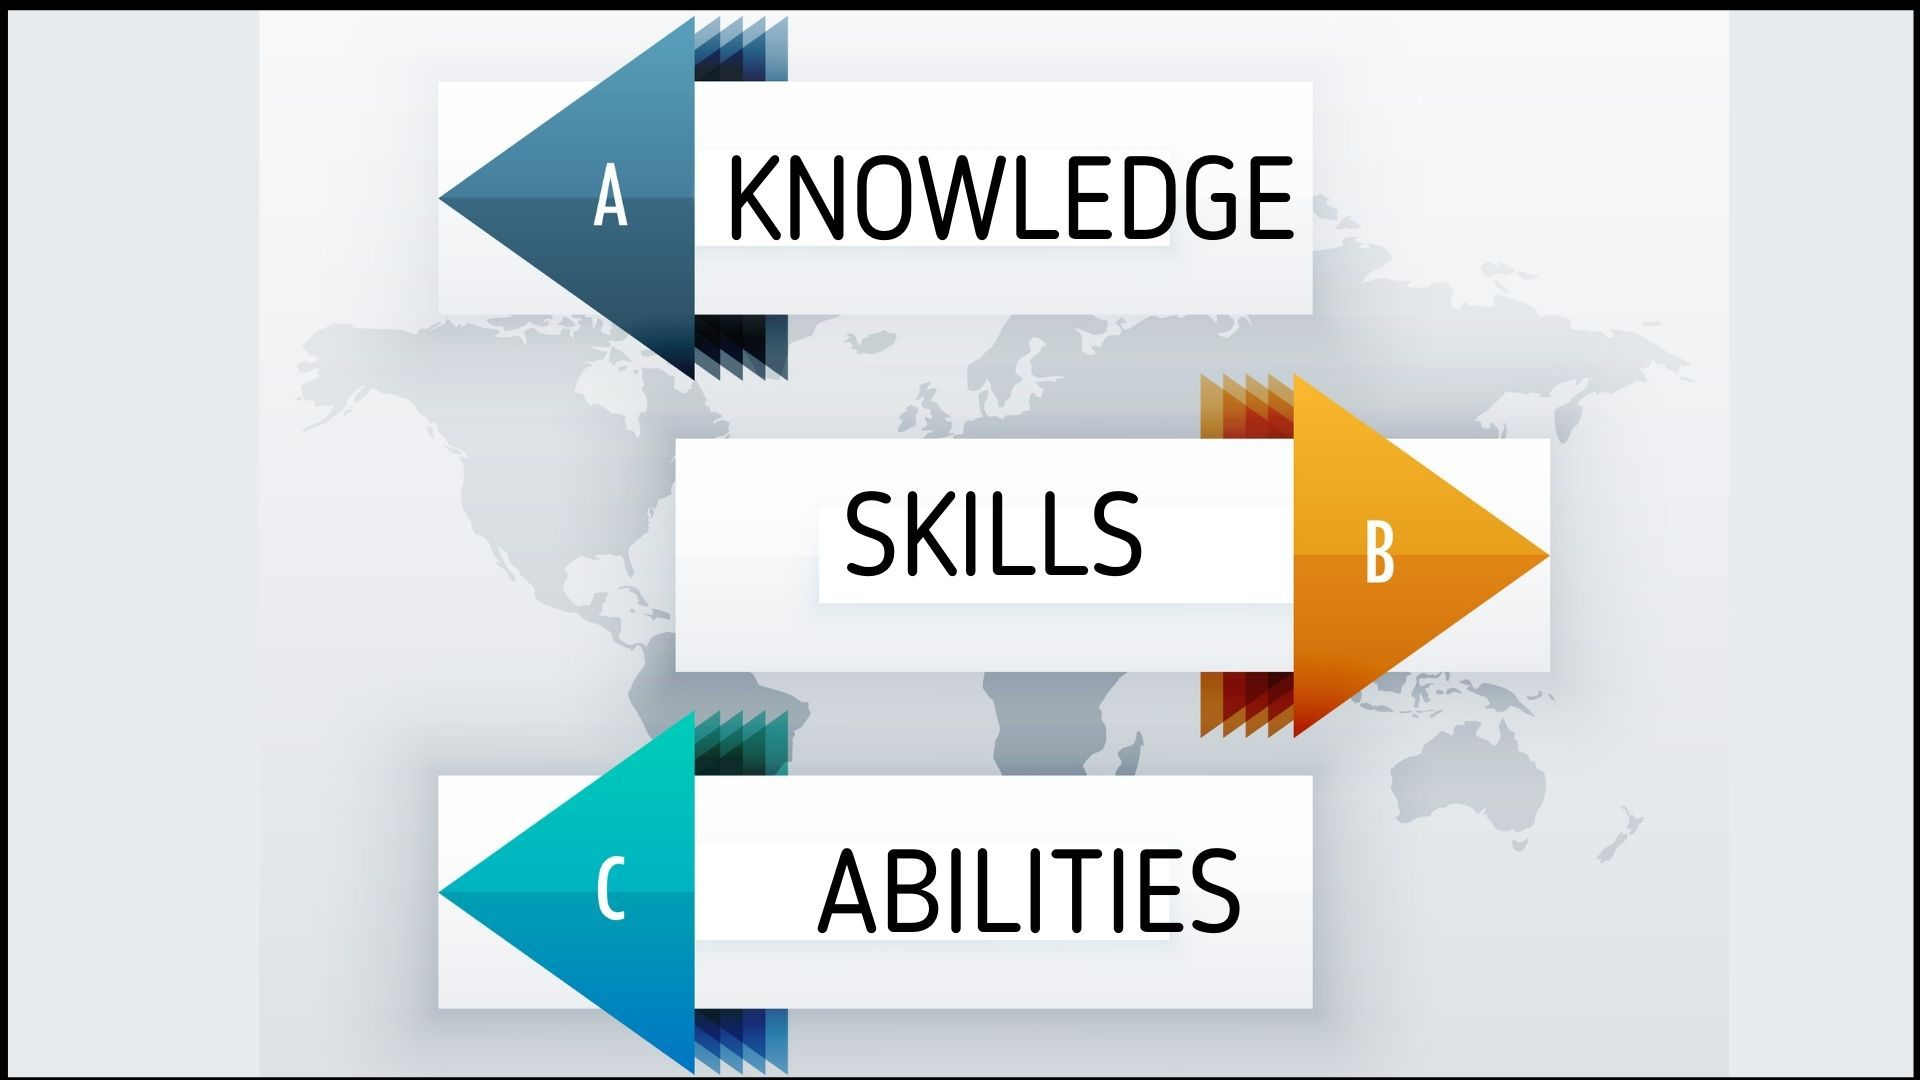 Key Differences in Knowledge, Skills, and Abilities